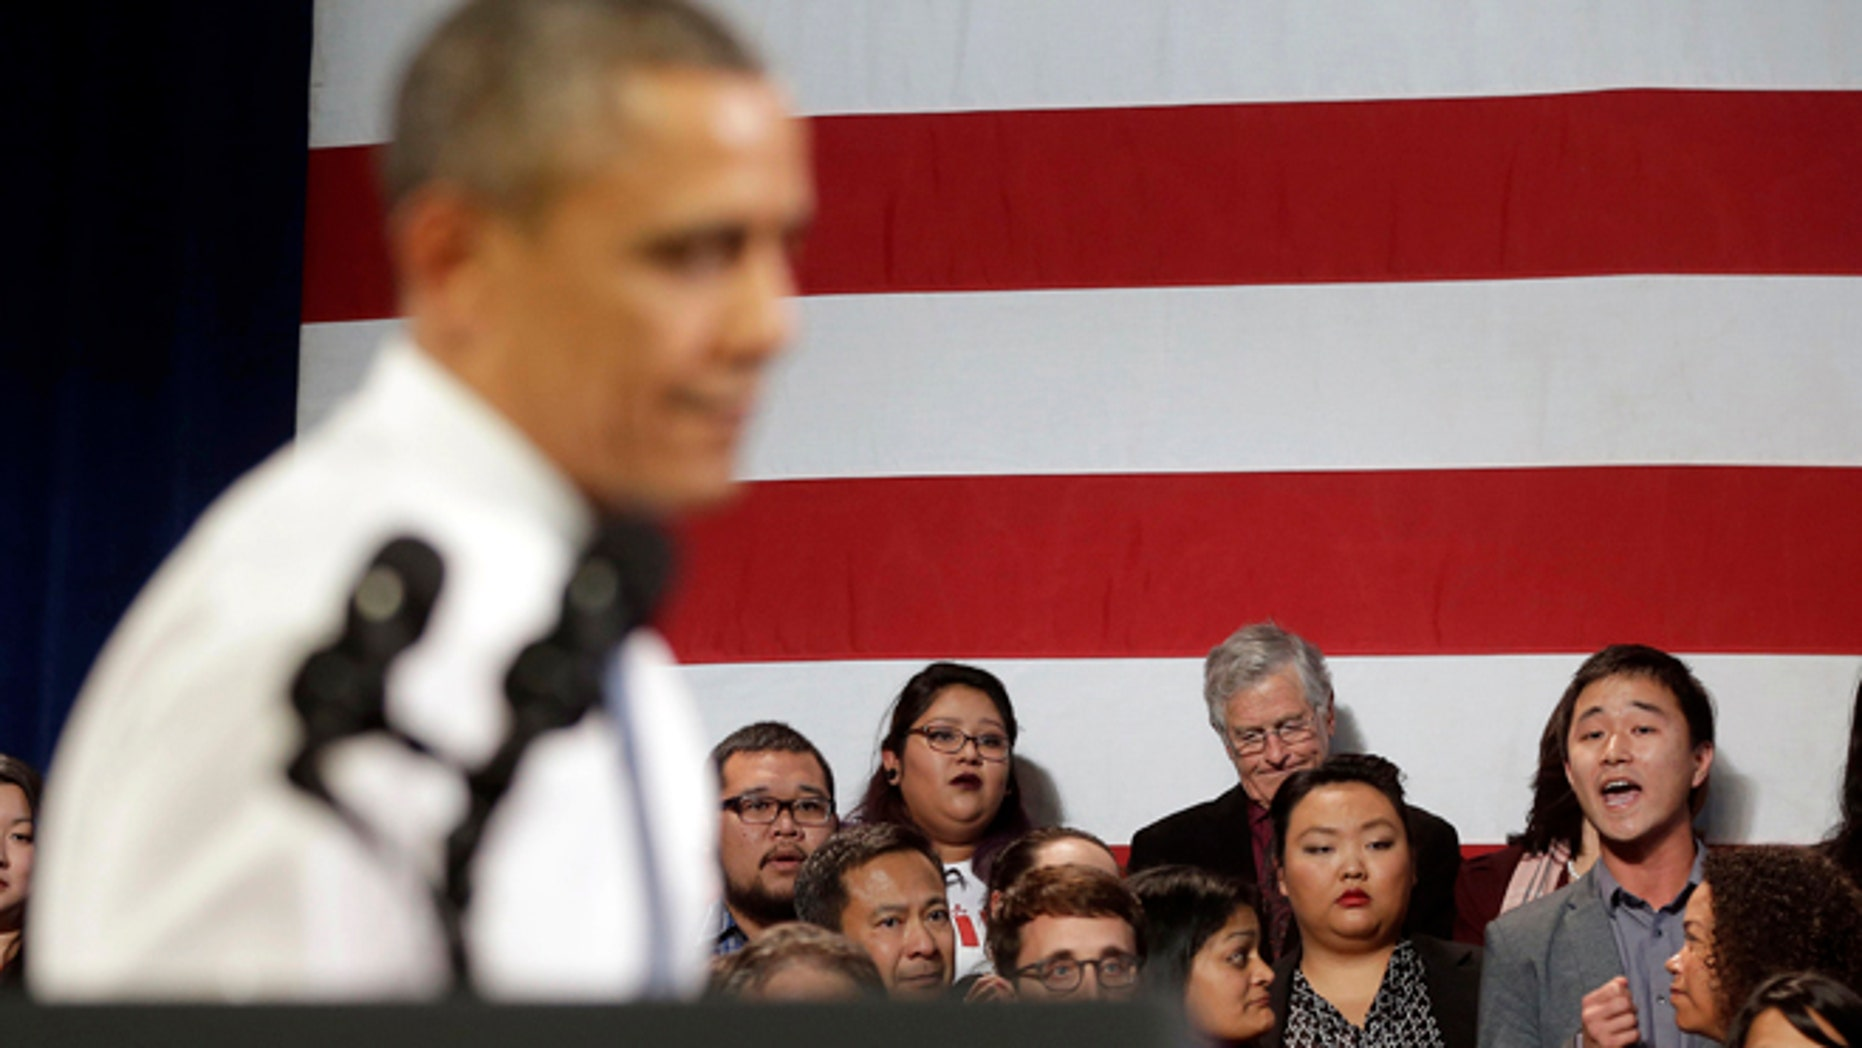 In this Nov. 25, 2013, photo, President Barack Obama, left, stops his speech and turns around in response to an unidentified man, right, who heckled him about anti-deportation policies, at the Betty Ann Ong Chinese Recreation Center in San Francisco. Obama stopped his speech about immigration reform to let this man, who was located directly behind Obama, speak and would respond to his questions. Advocates are frustrated with the failure of House Republicans to tackle immigration. Increasingly, theyâre focus is on President Barack Obama. The outside groups are demanding that Obama use his powers as chief executive to stop deportations or provide some relief to many of the 11 million immigrants living here illegally.  (AP Photo/Pablo Martinez Monsivais, File)